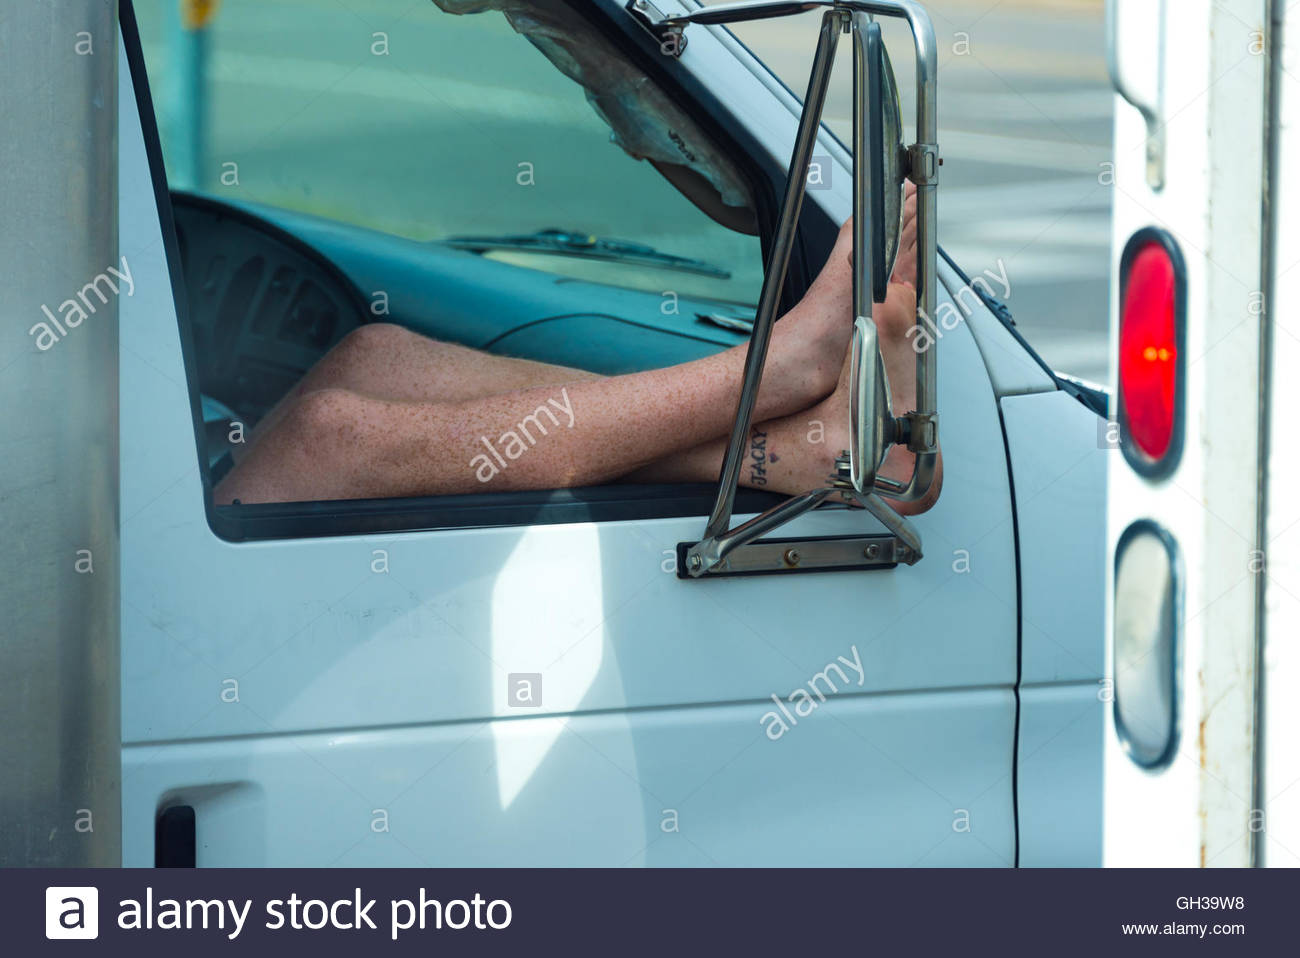 Summer scene: Young man sticking his legs out of the car's window due to the hot weather. - Stock Image